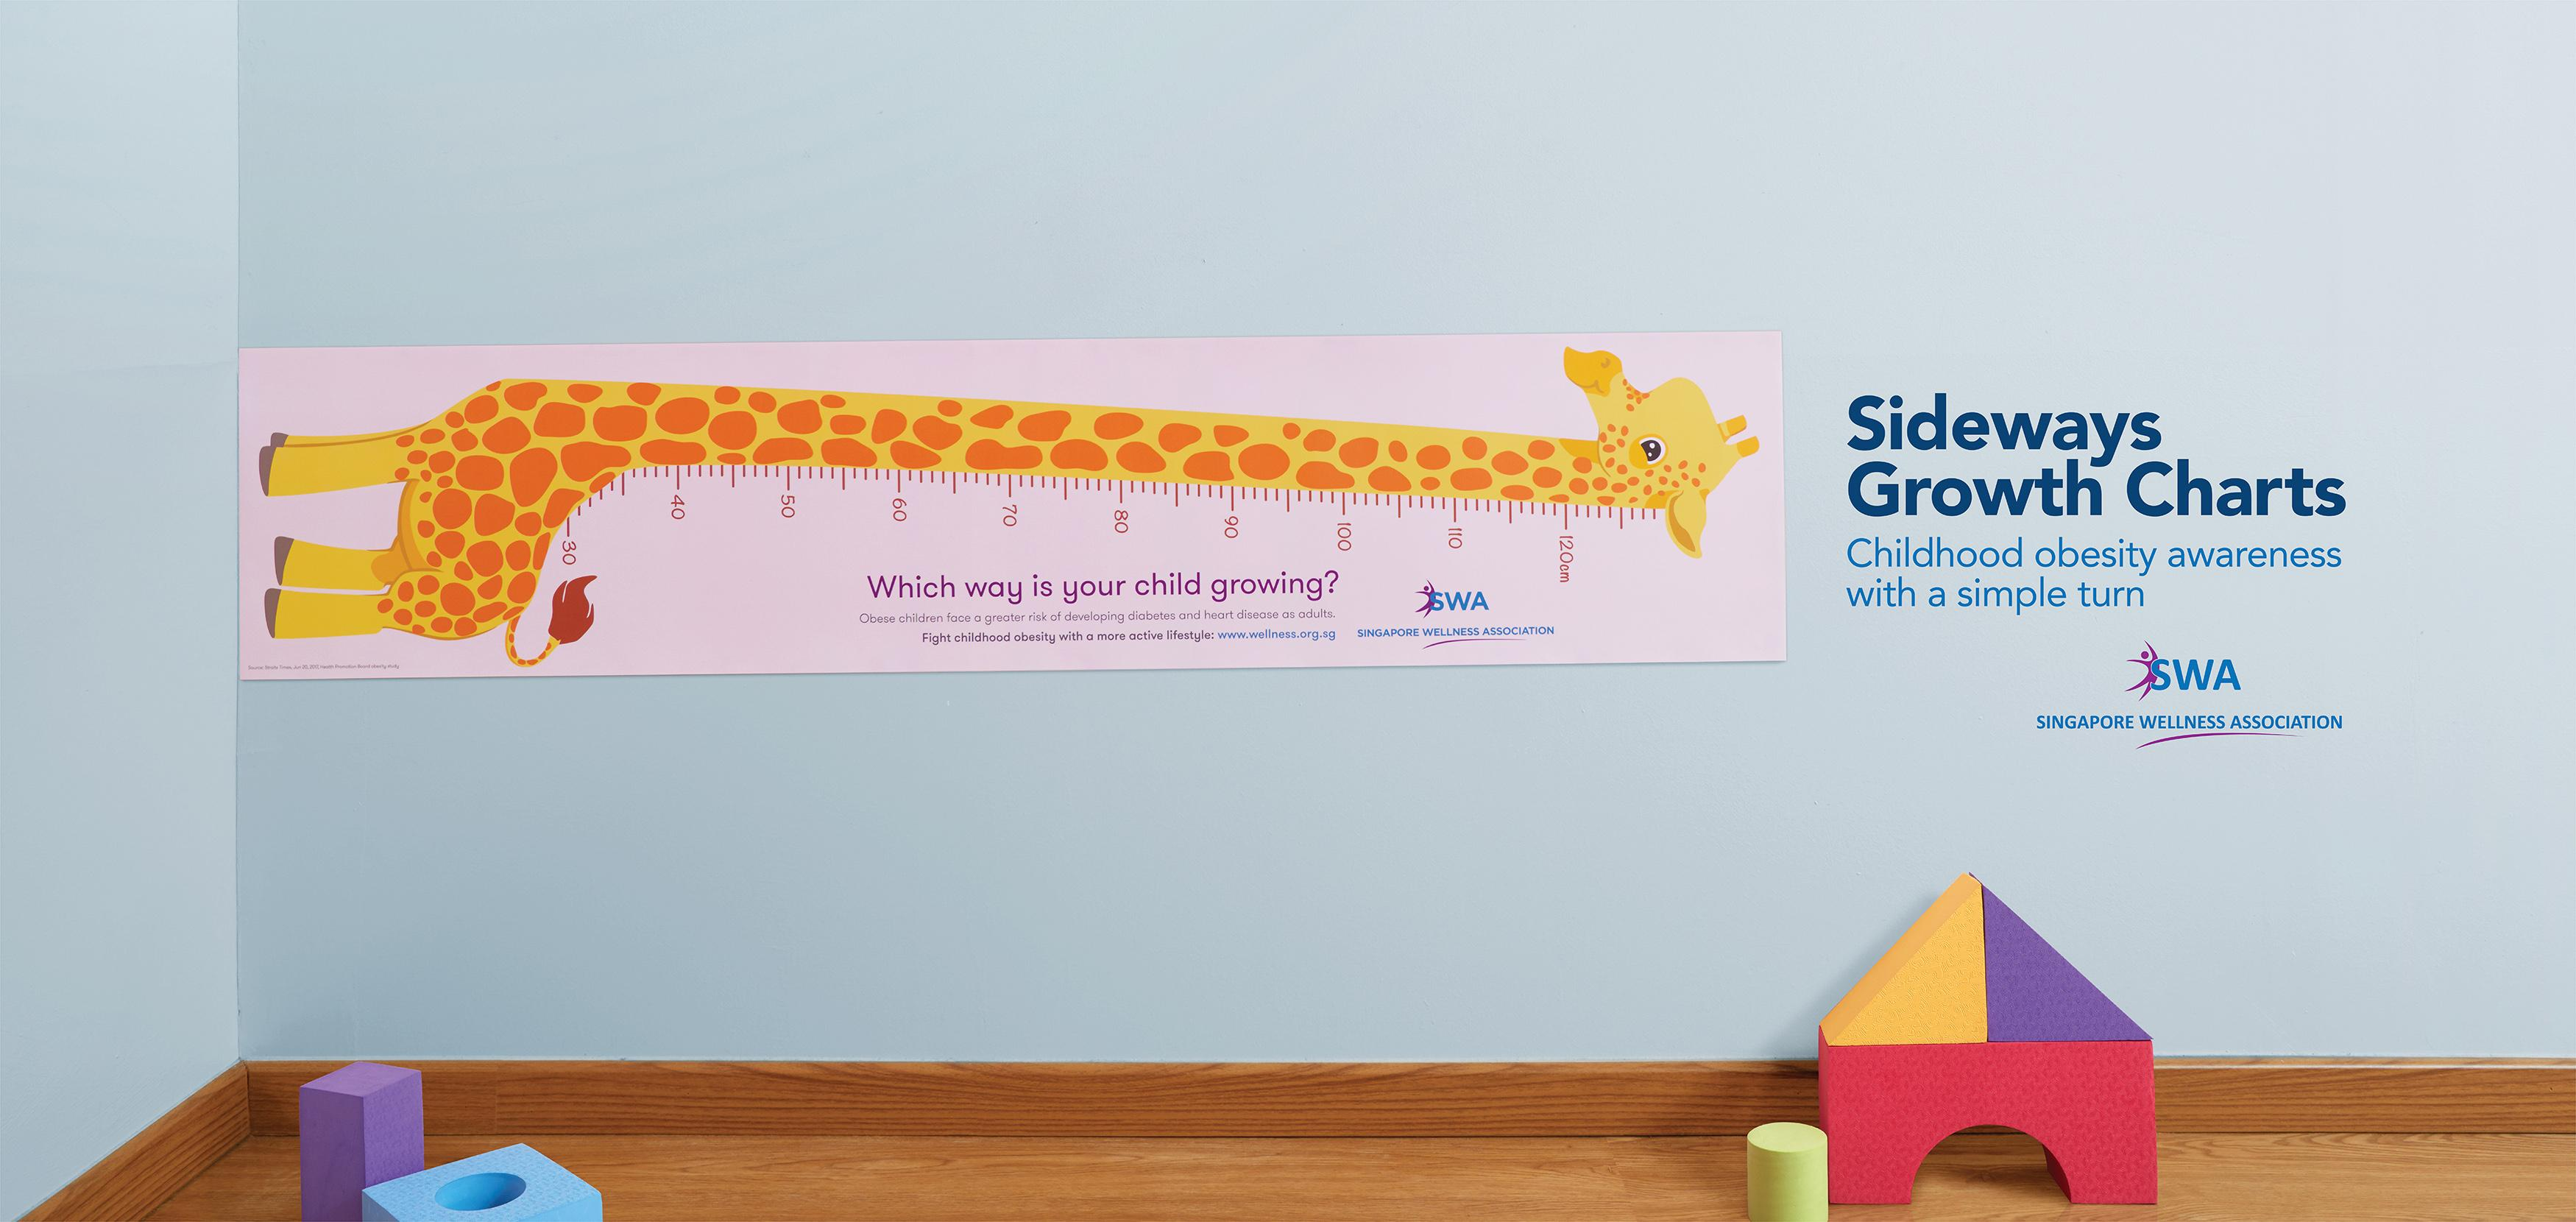 Singapore Wellness Association Ambient Ad - Sideways Growth Charts